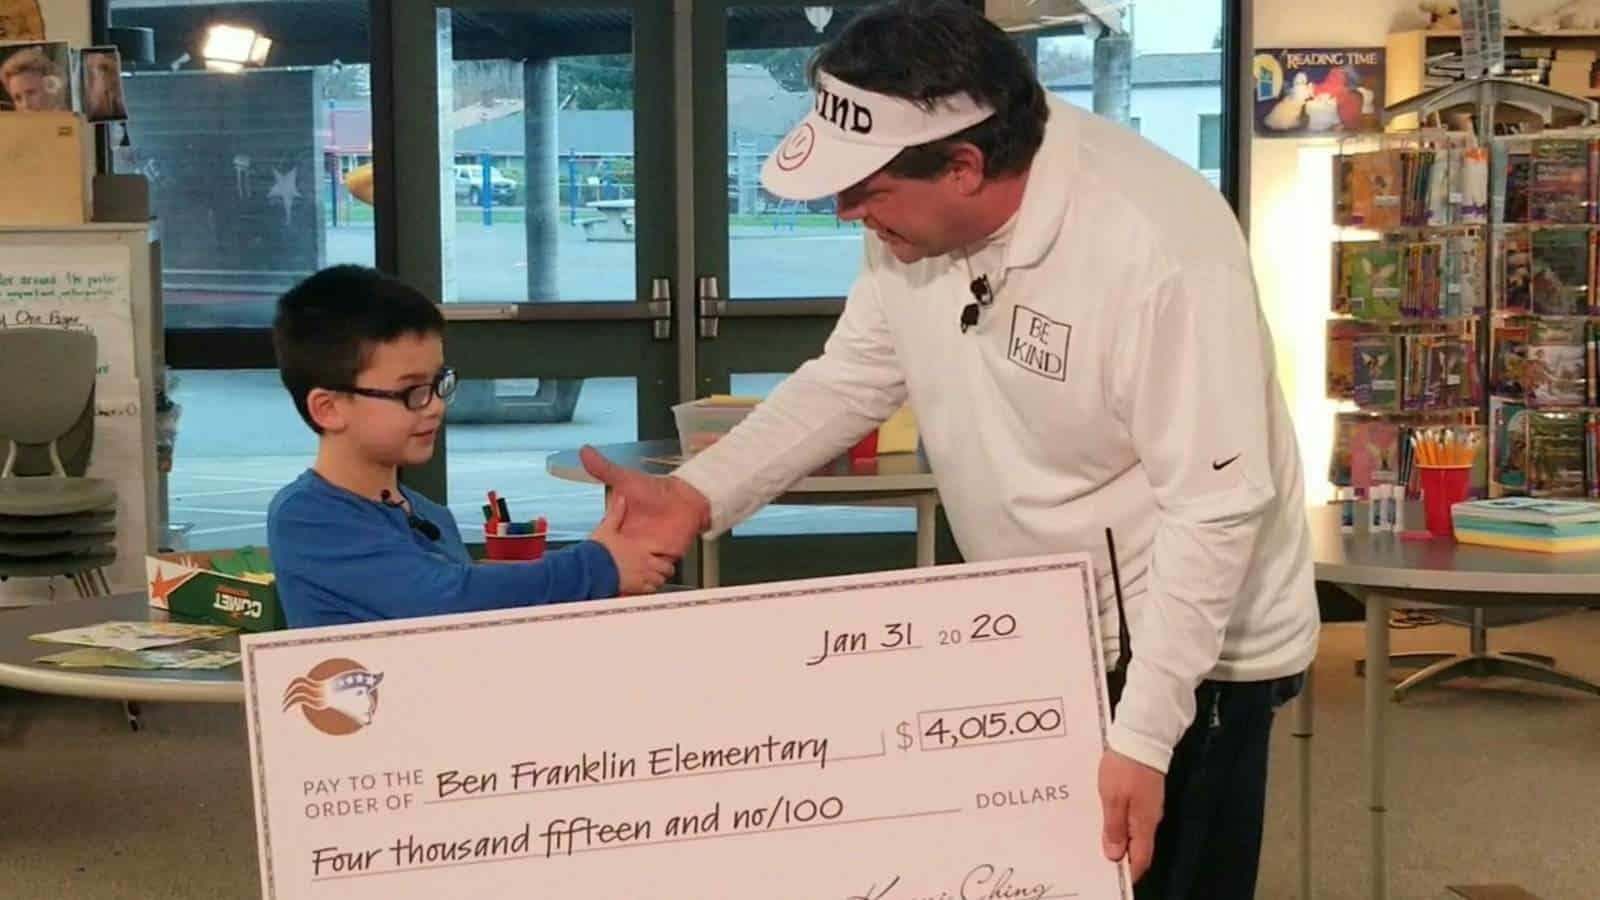 As a solution to the school lunch debt problem one elementary school once had, an elementary school boy pays off the entire school's lunch debt to help other students get some lunch money